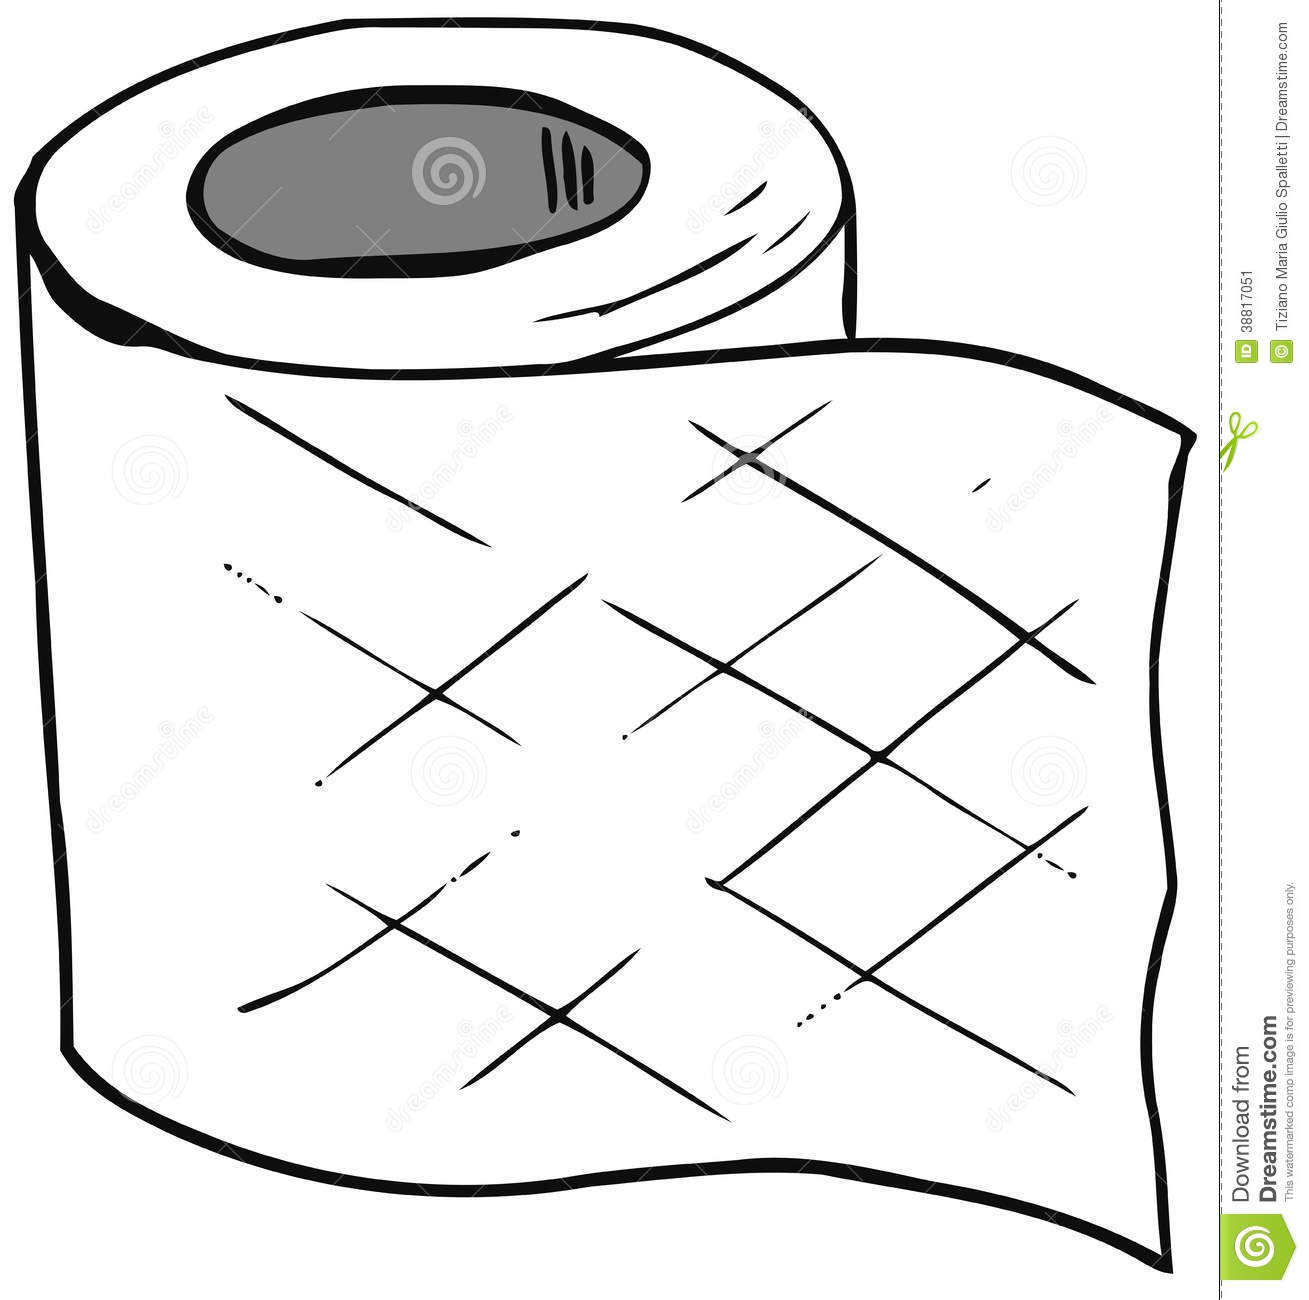 Bad Boy Art price as well Pelota De Golf Fondo De Textura De Papel Tapiz Gm517378145 48671916 together with Nesw White Art Print By W Ap likewise 1157 1 furthermore Arabic Alphabets Crafts Coloring Pages. on toilet paper